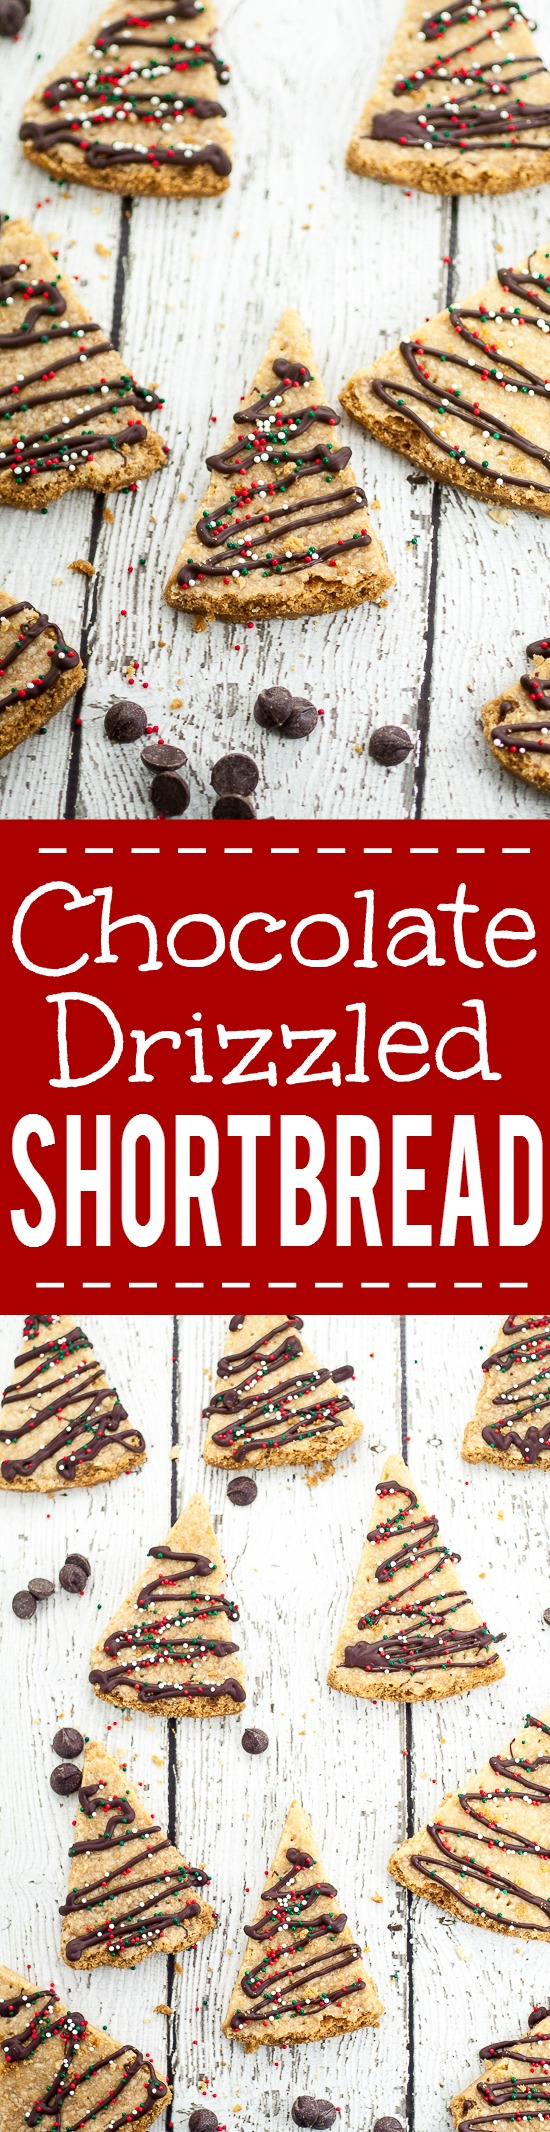 Chocolate Drizzled Shortbread Recipe -A classic buttery shortbread recipe cut into triangles and drizzled with chocolate and festive sprinkles makes this fun Chocolate Drizzled Shortbread cookies look like little Christmas trees.